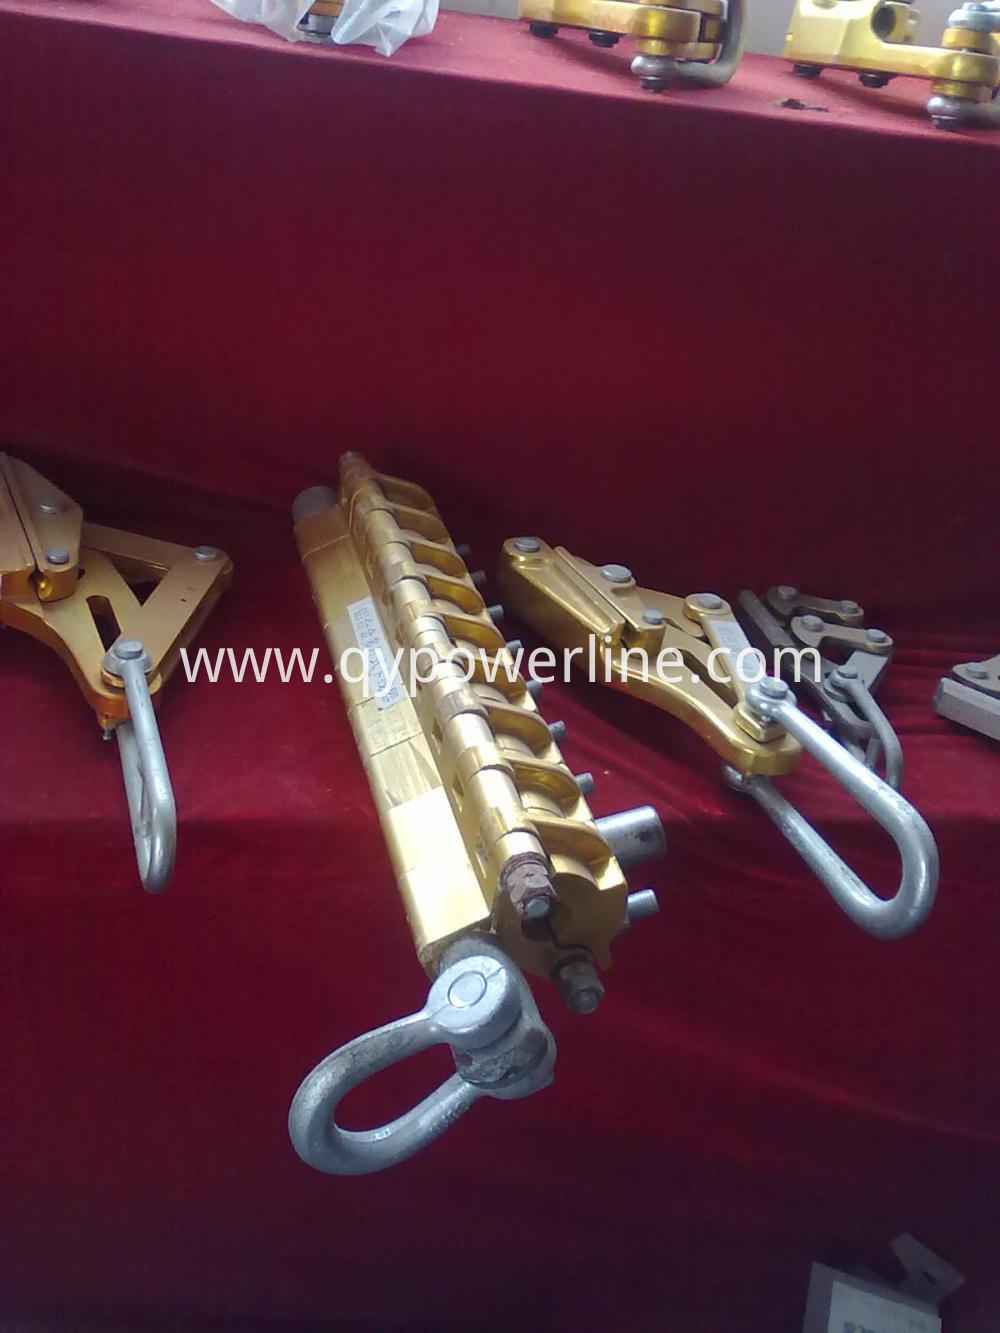 Bolt type OPGW come along clamp